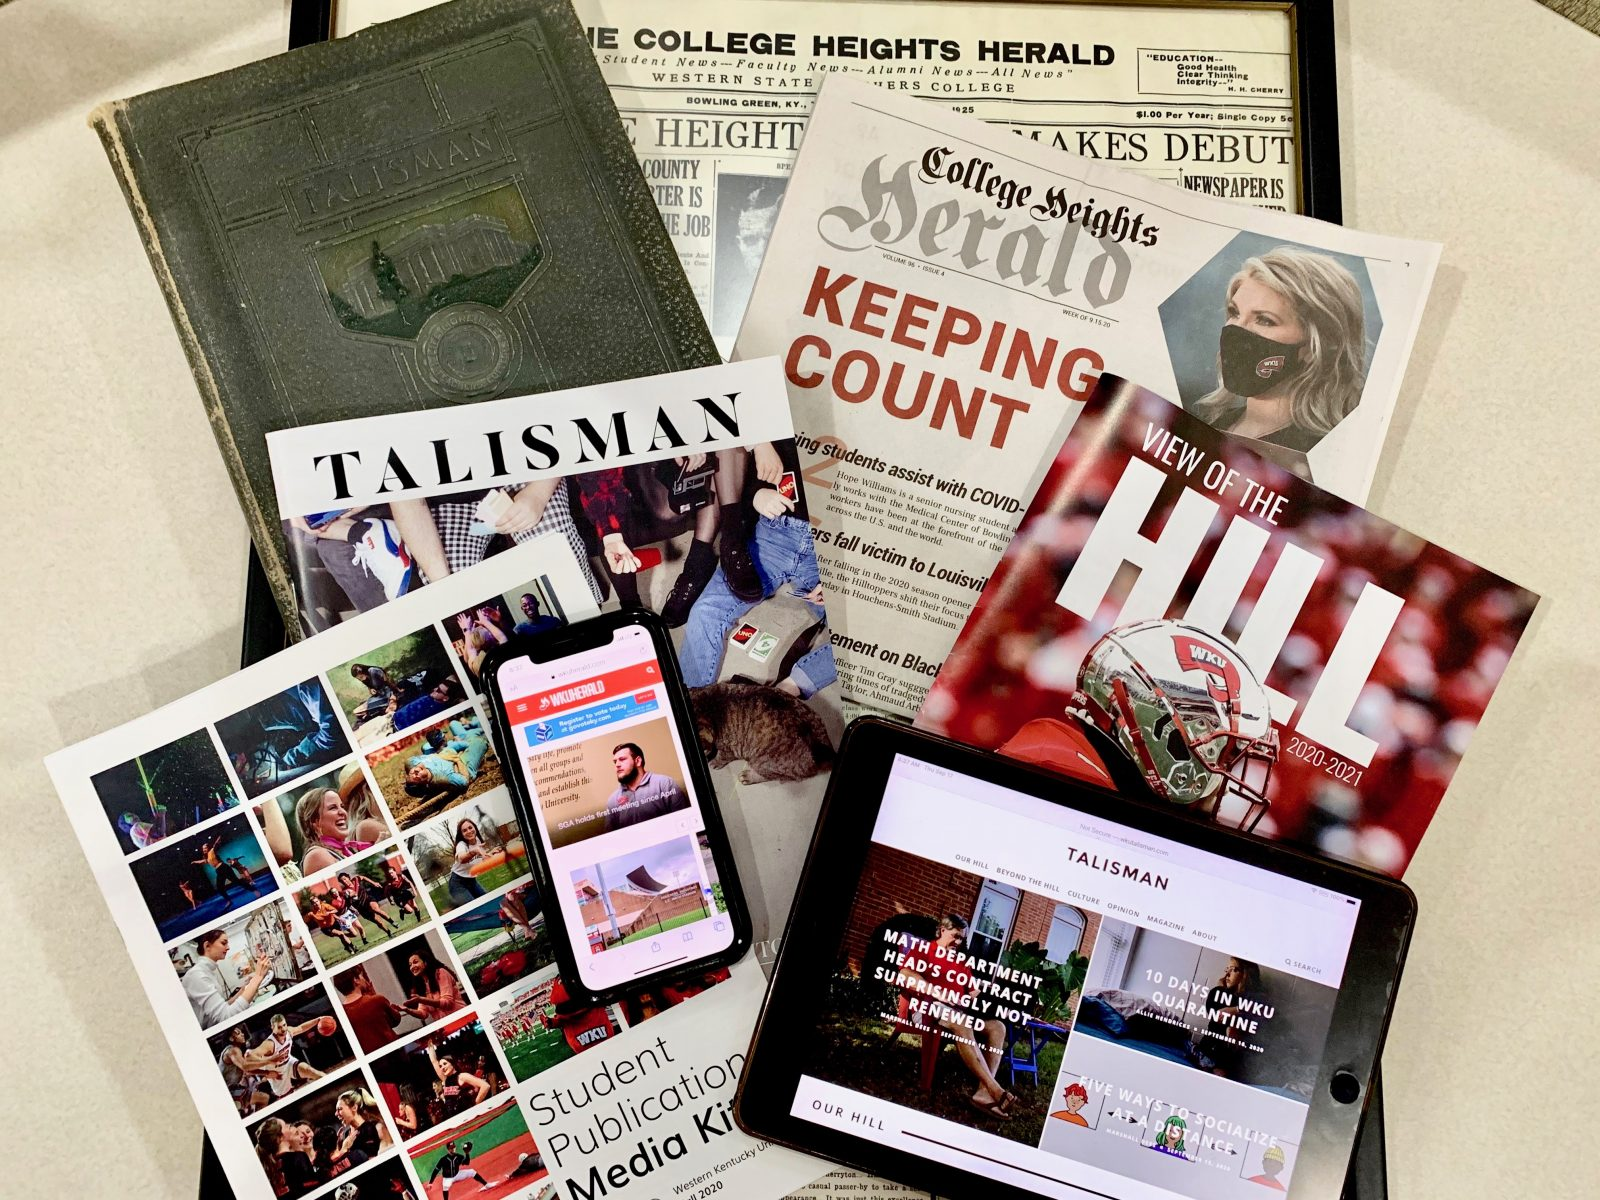 The College Heights Herald and the Talisman reach back to 1925 and 1925 respectively but have evolved with technology